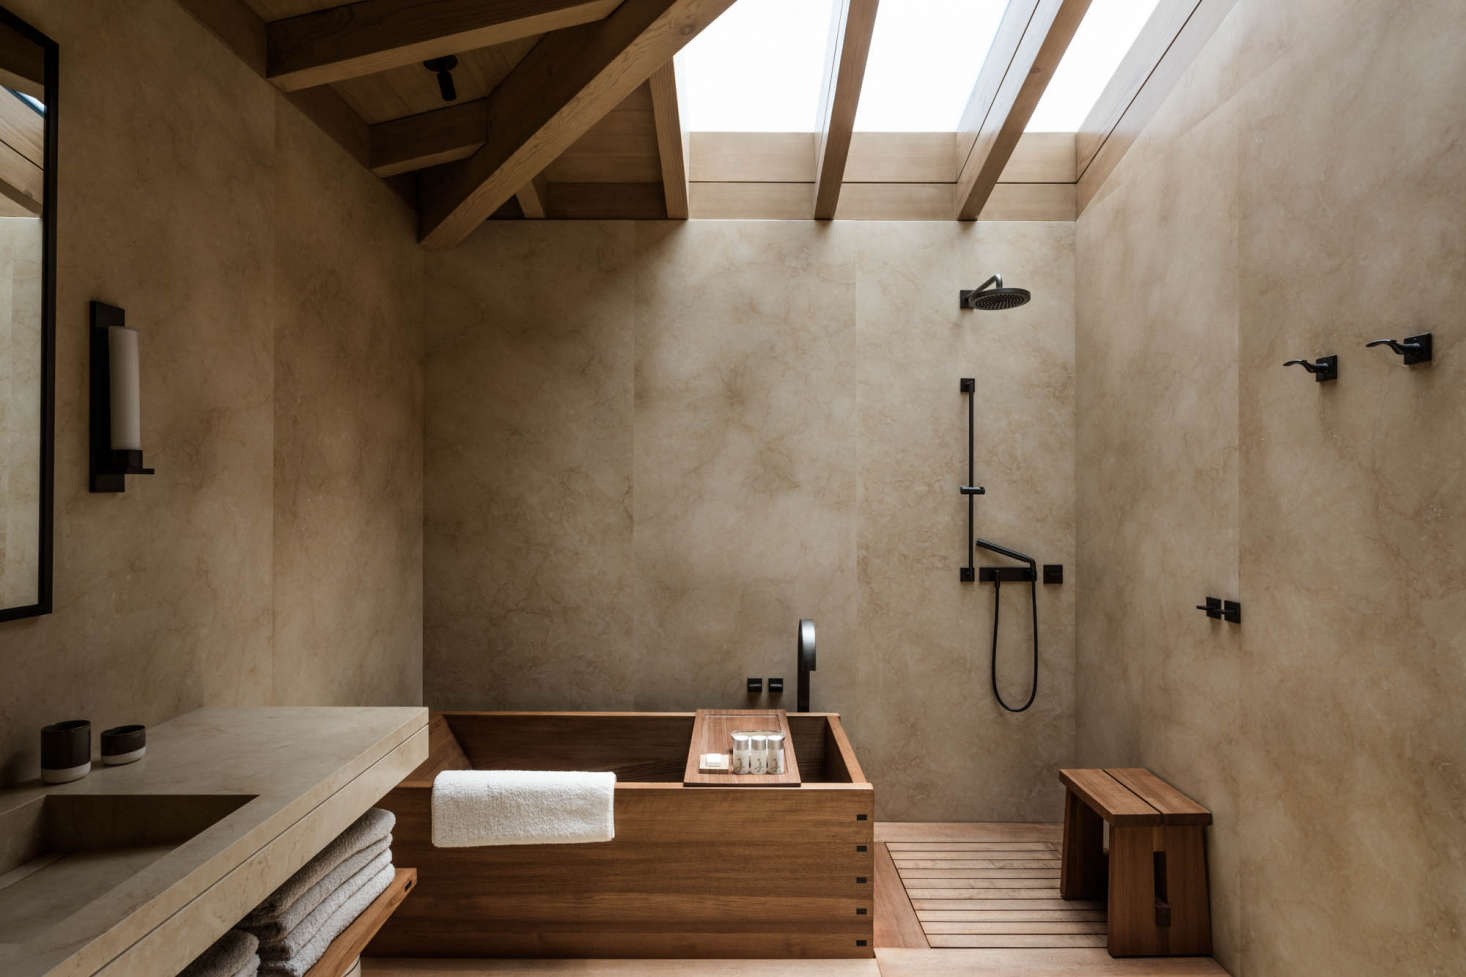 10 Favorites: Japanese-Style Bathtubs Around the World - Remodelista